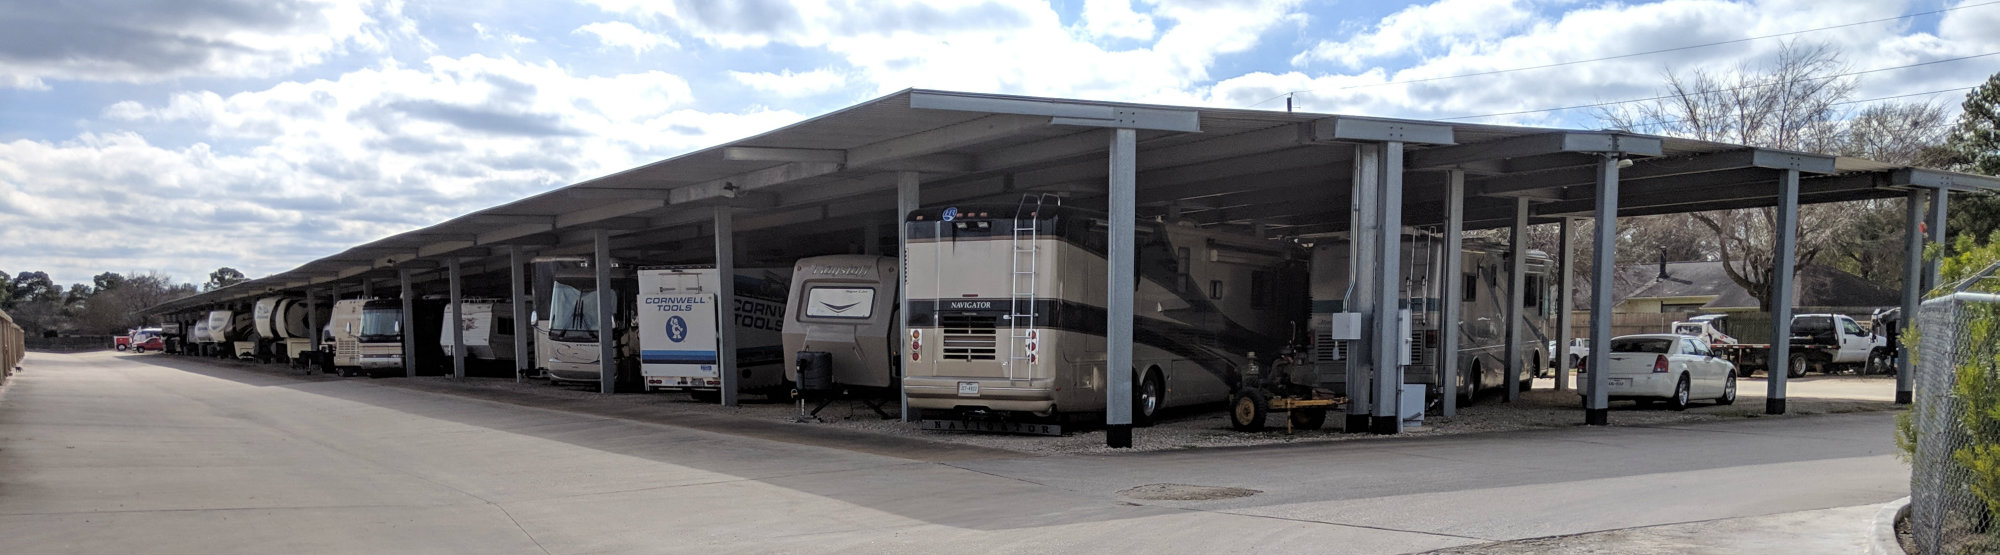 Boat and RV Storage in Spring Texas